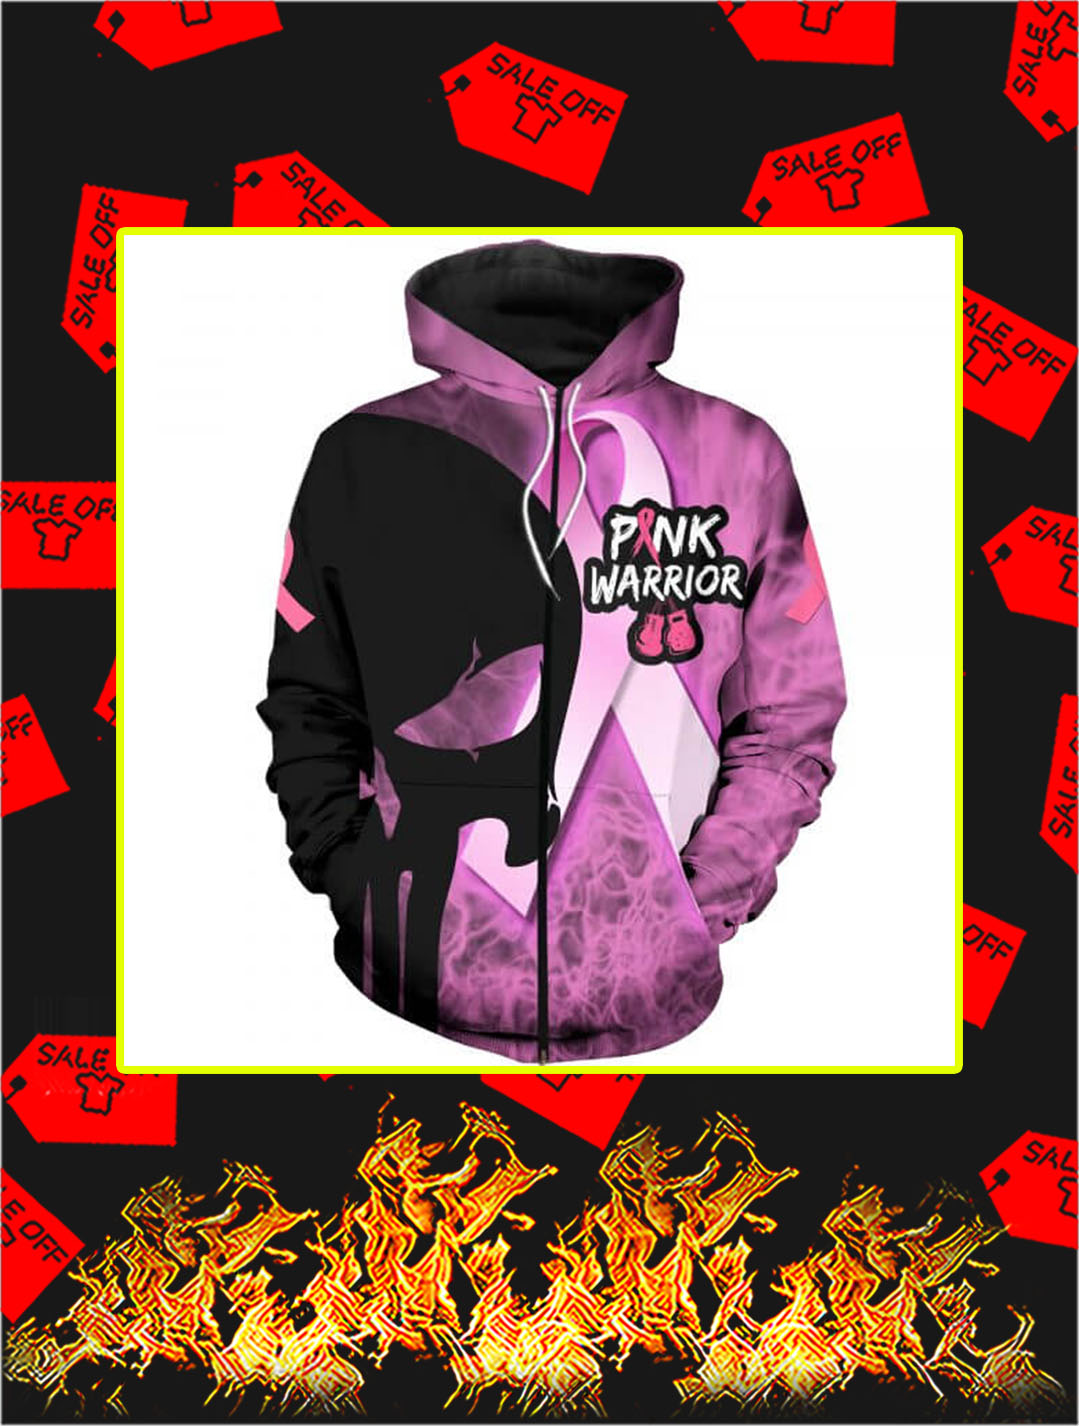 3D Printed Cancer Pink Warrior Punisher Skull Zip Hoodie